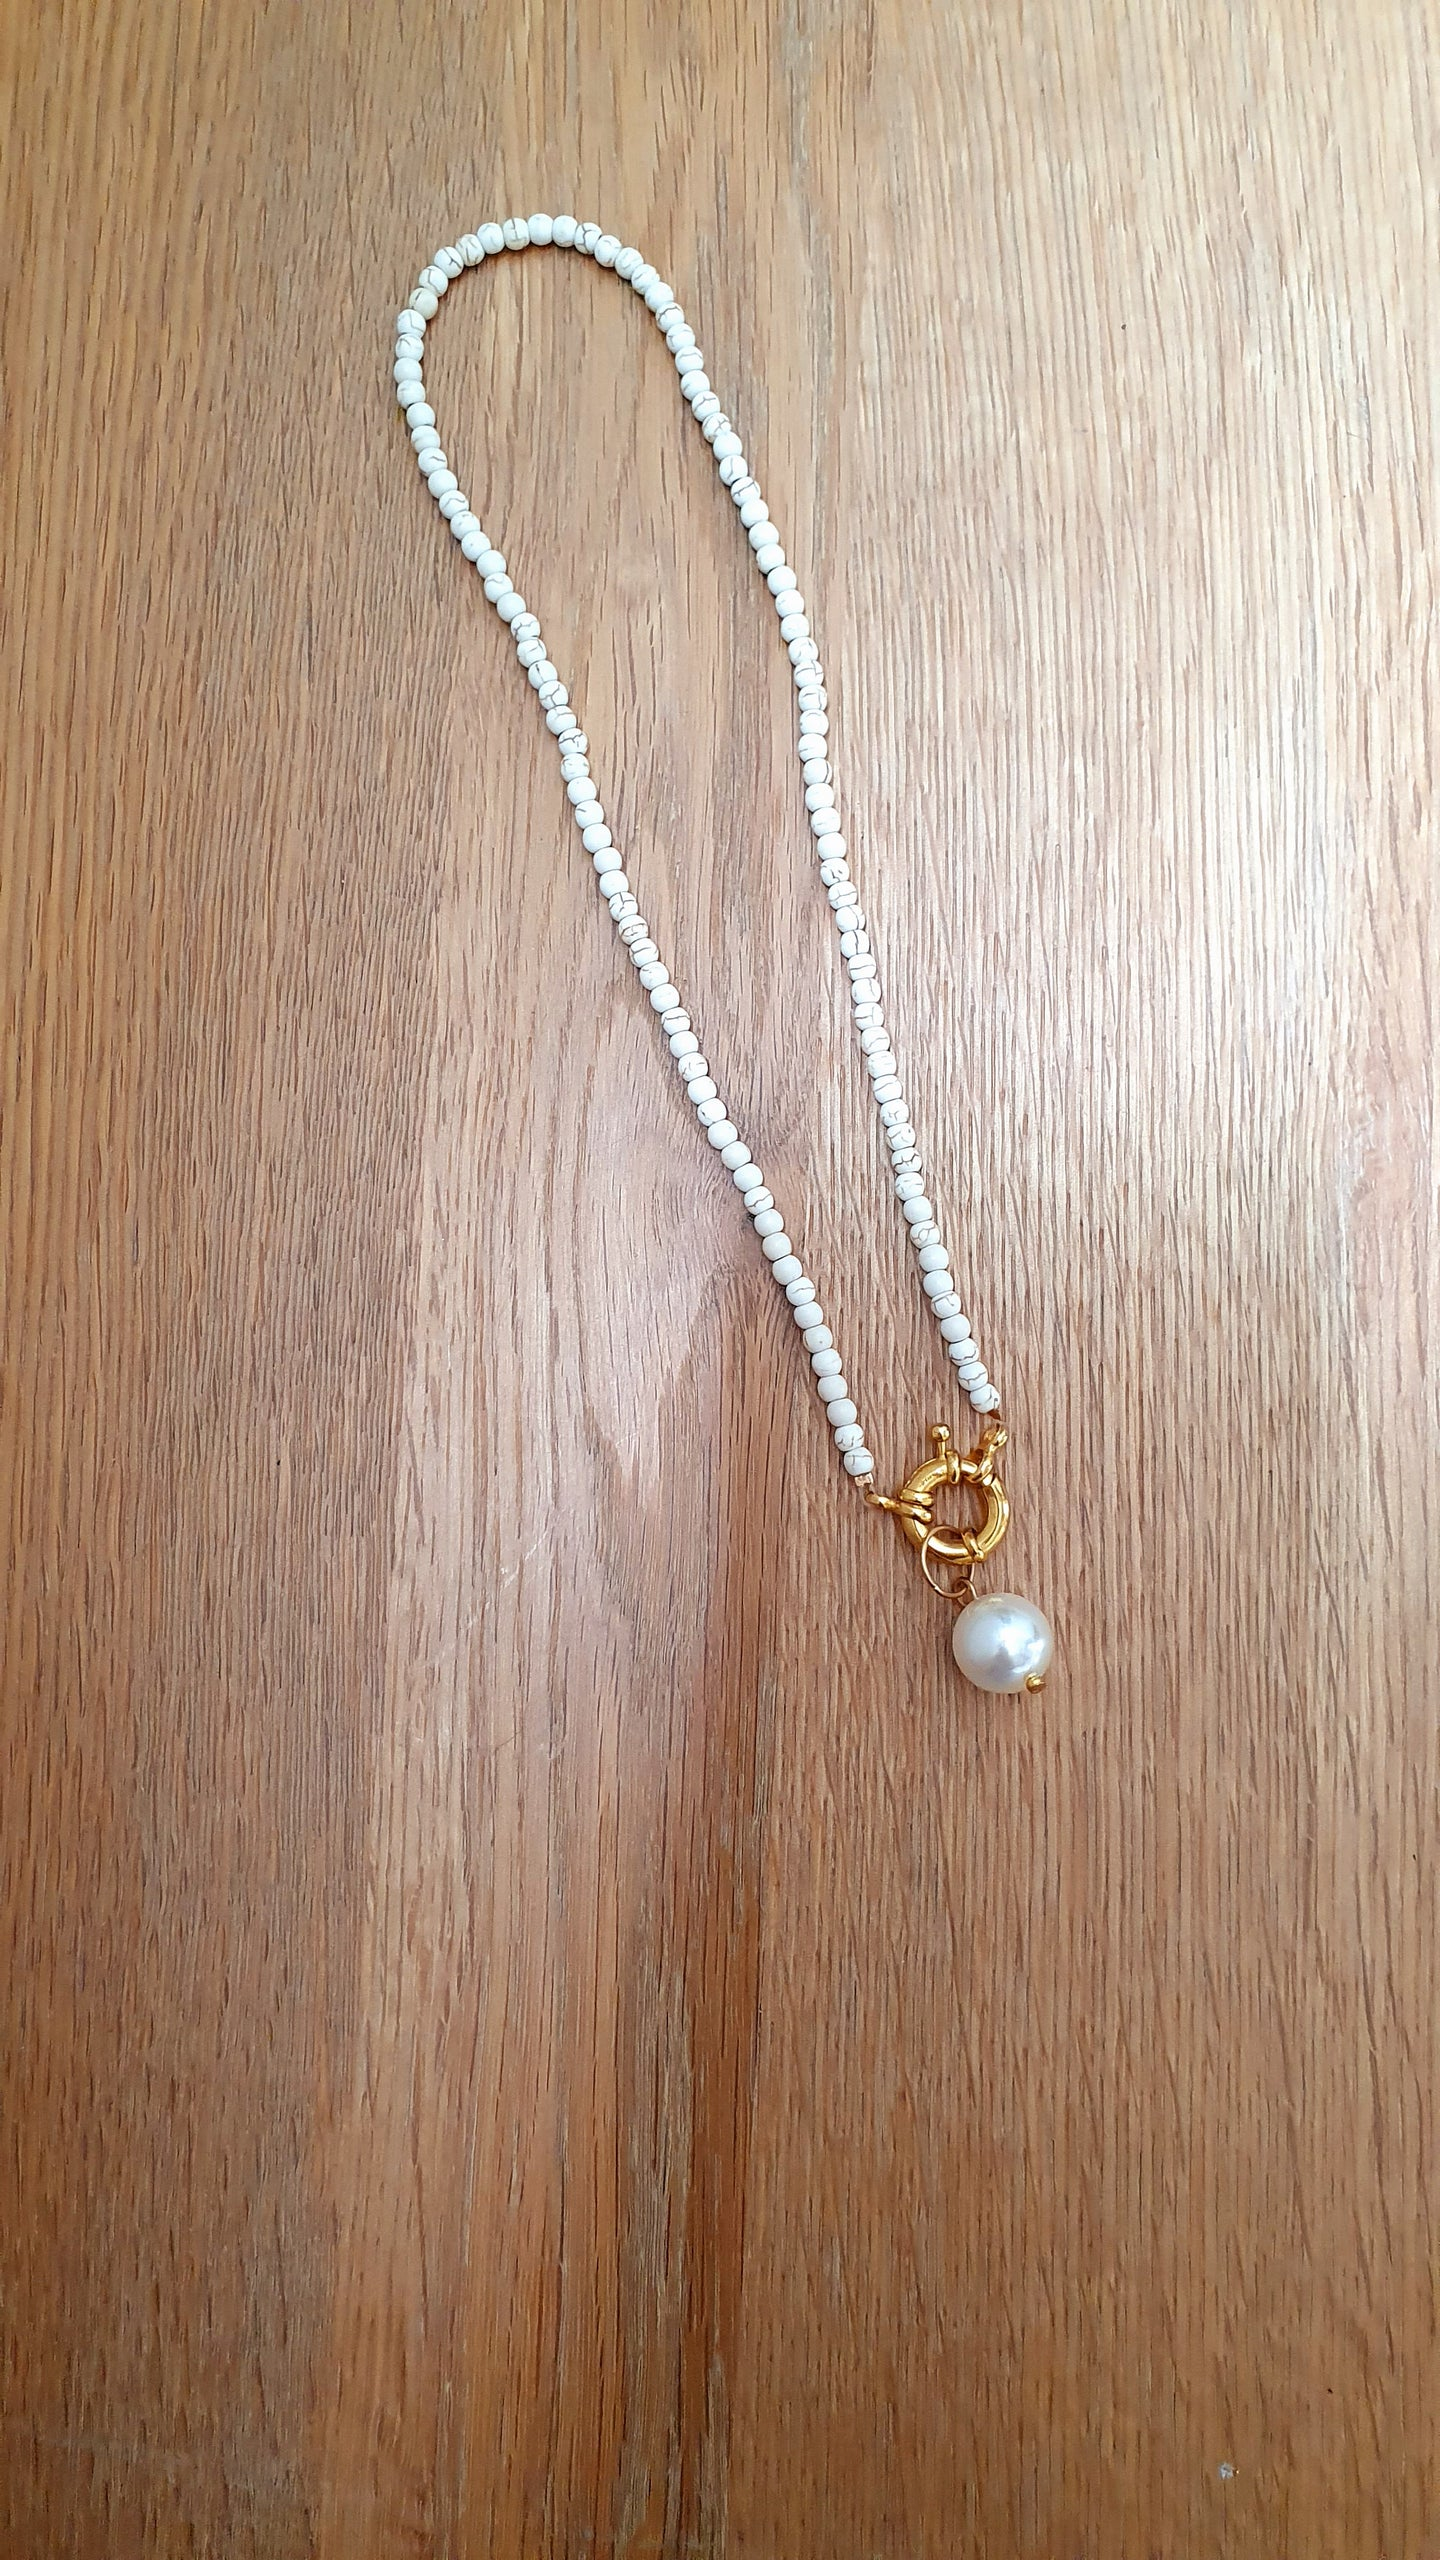 White dreams short necklace